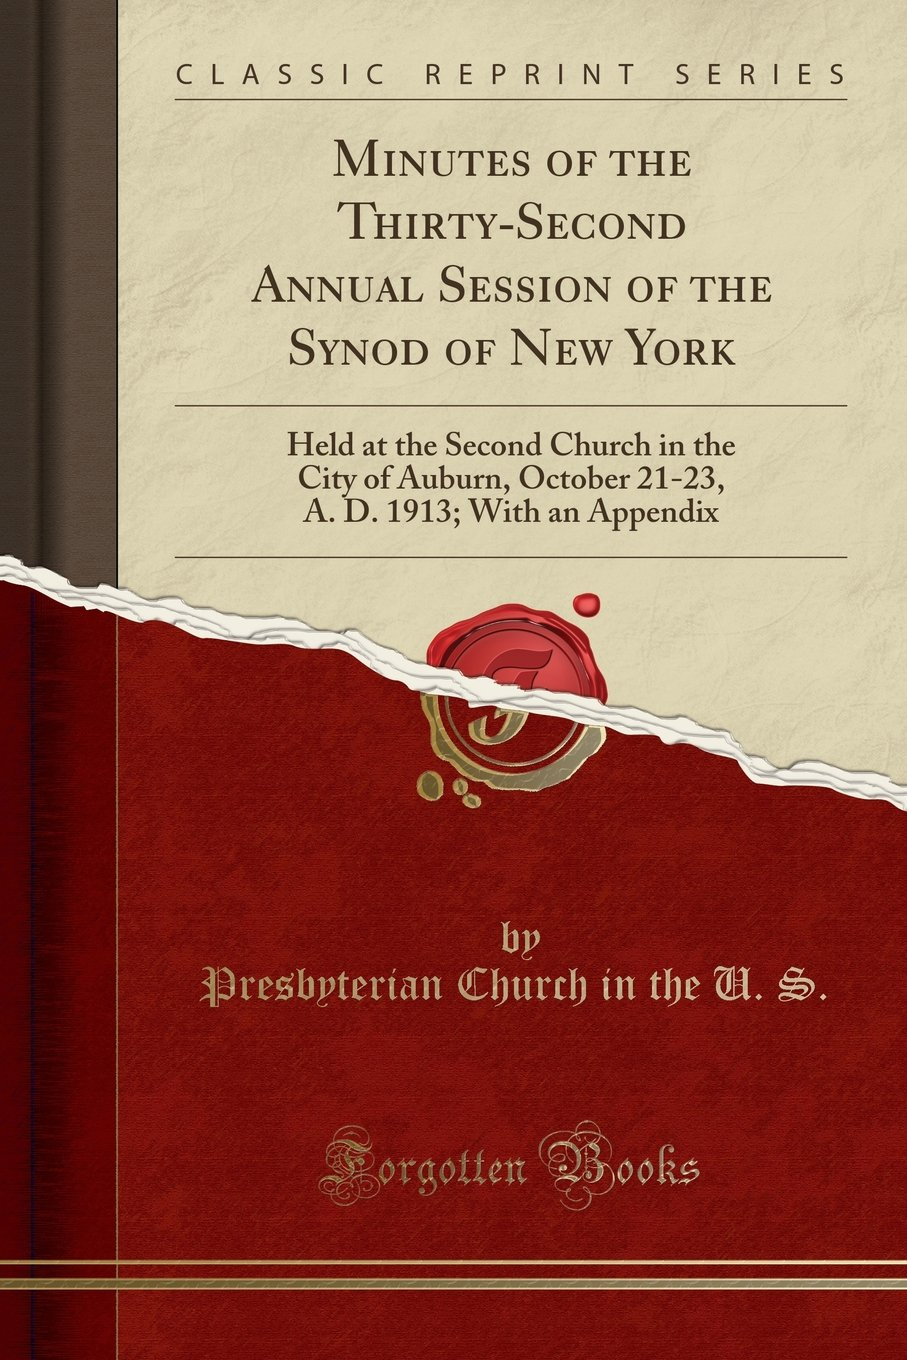 Minutes of the Thirty-Second Annual Session of the Synod of New York: Held at the Second Church in the City of Auburn, October 21-23, A. D. 1913; With an Appendix (Classic Reprint) pdf epub